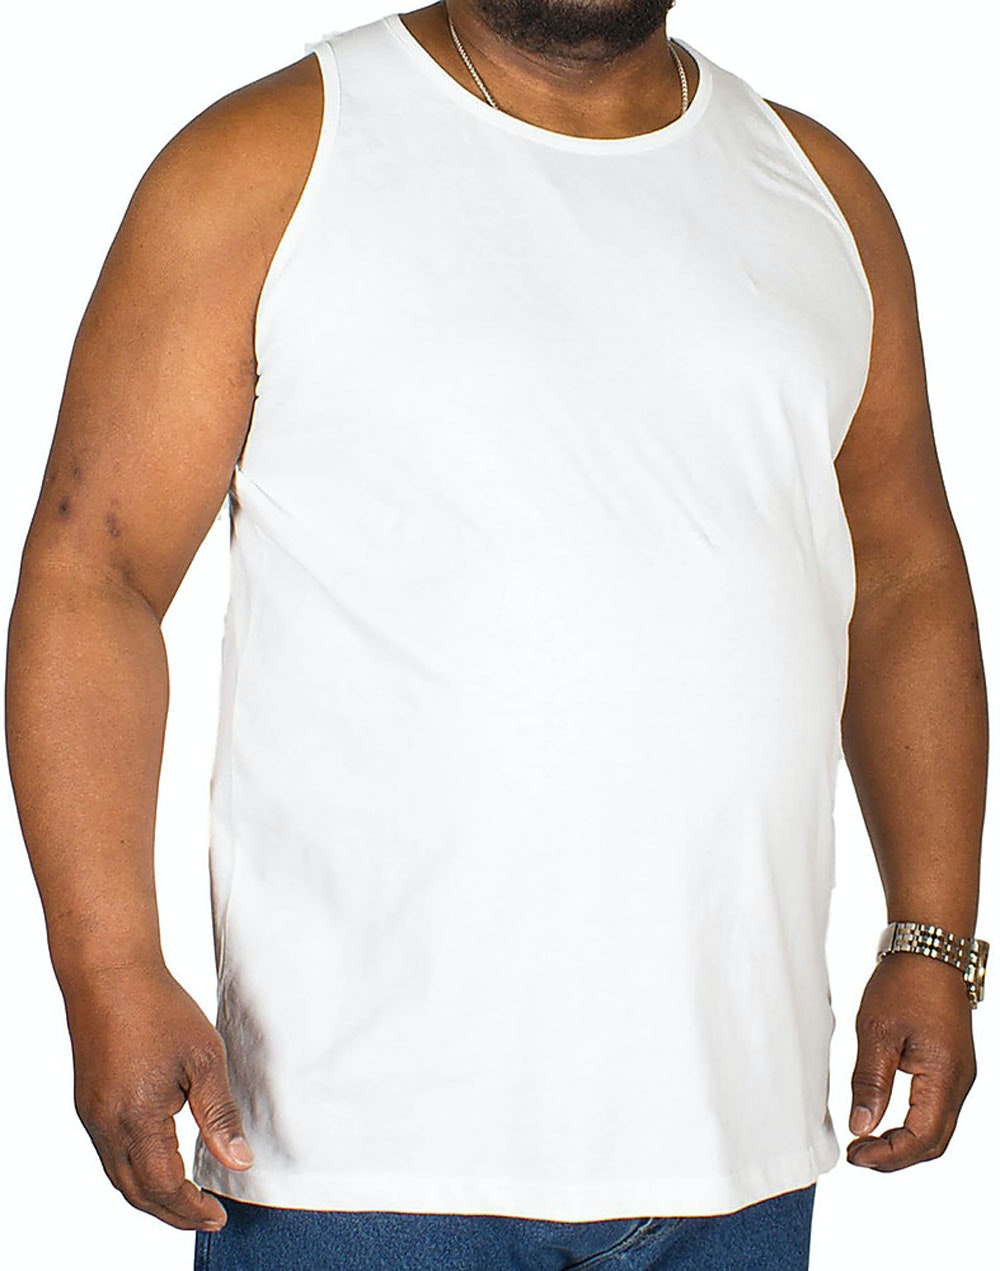 Bigdude Plain Vest White Tall